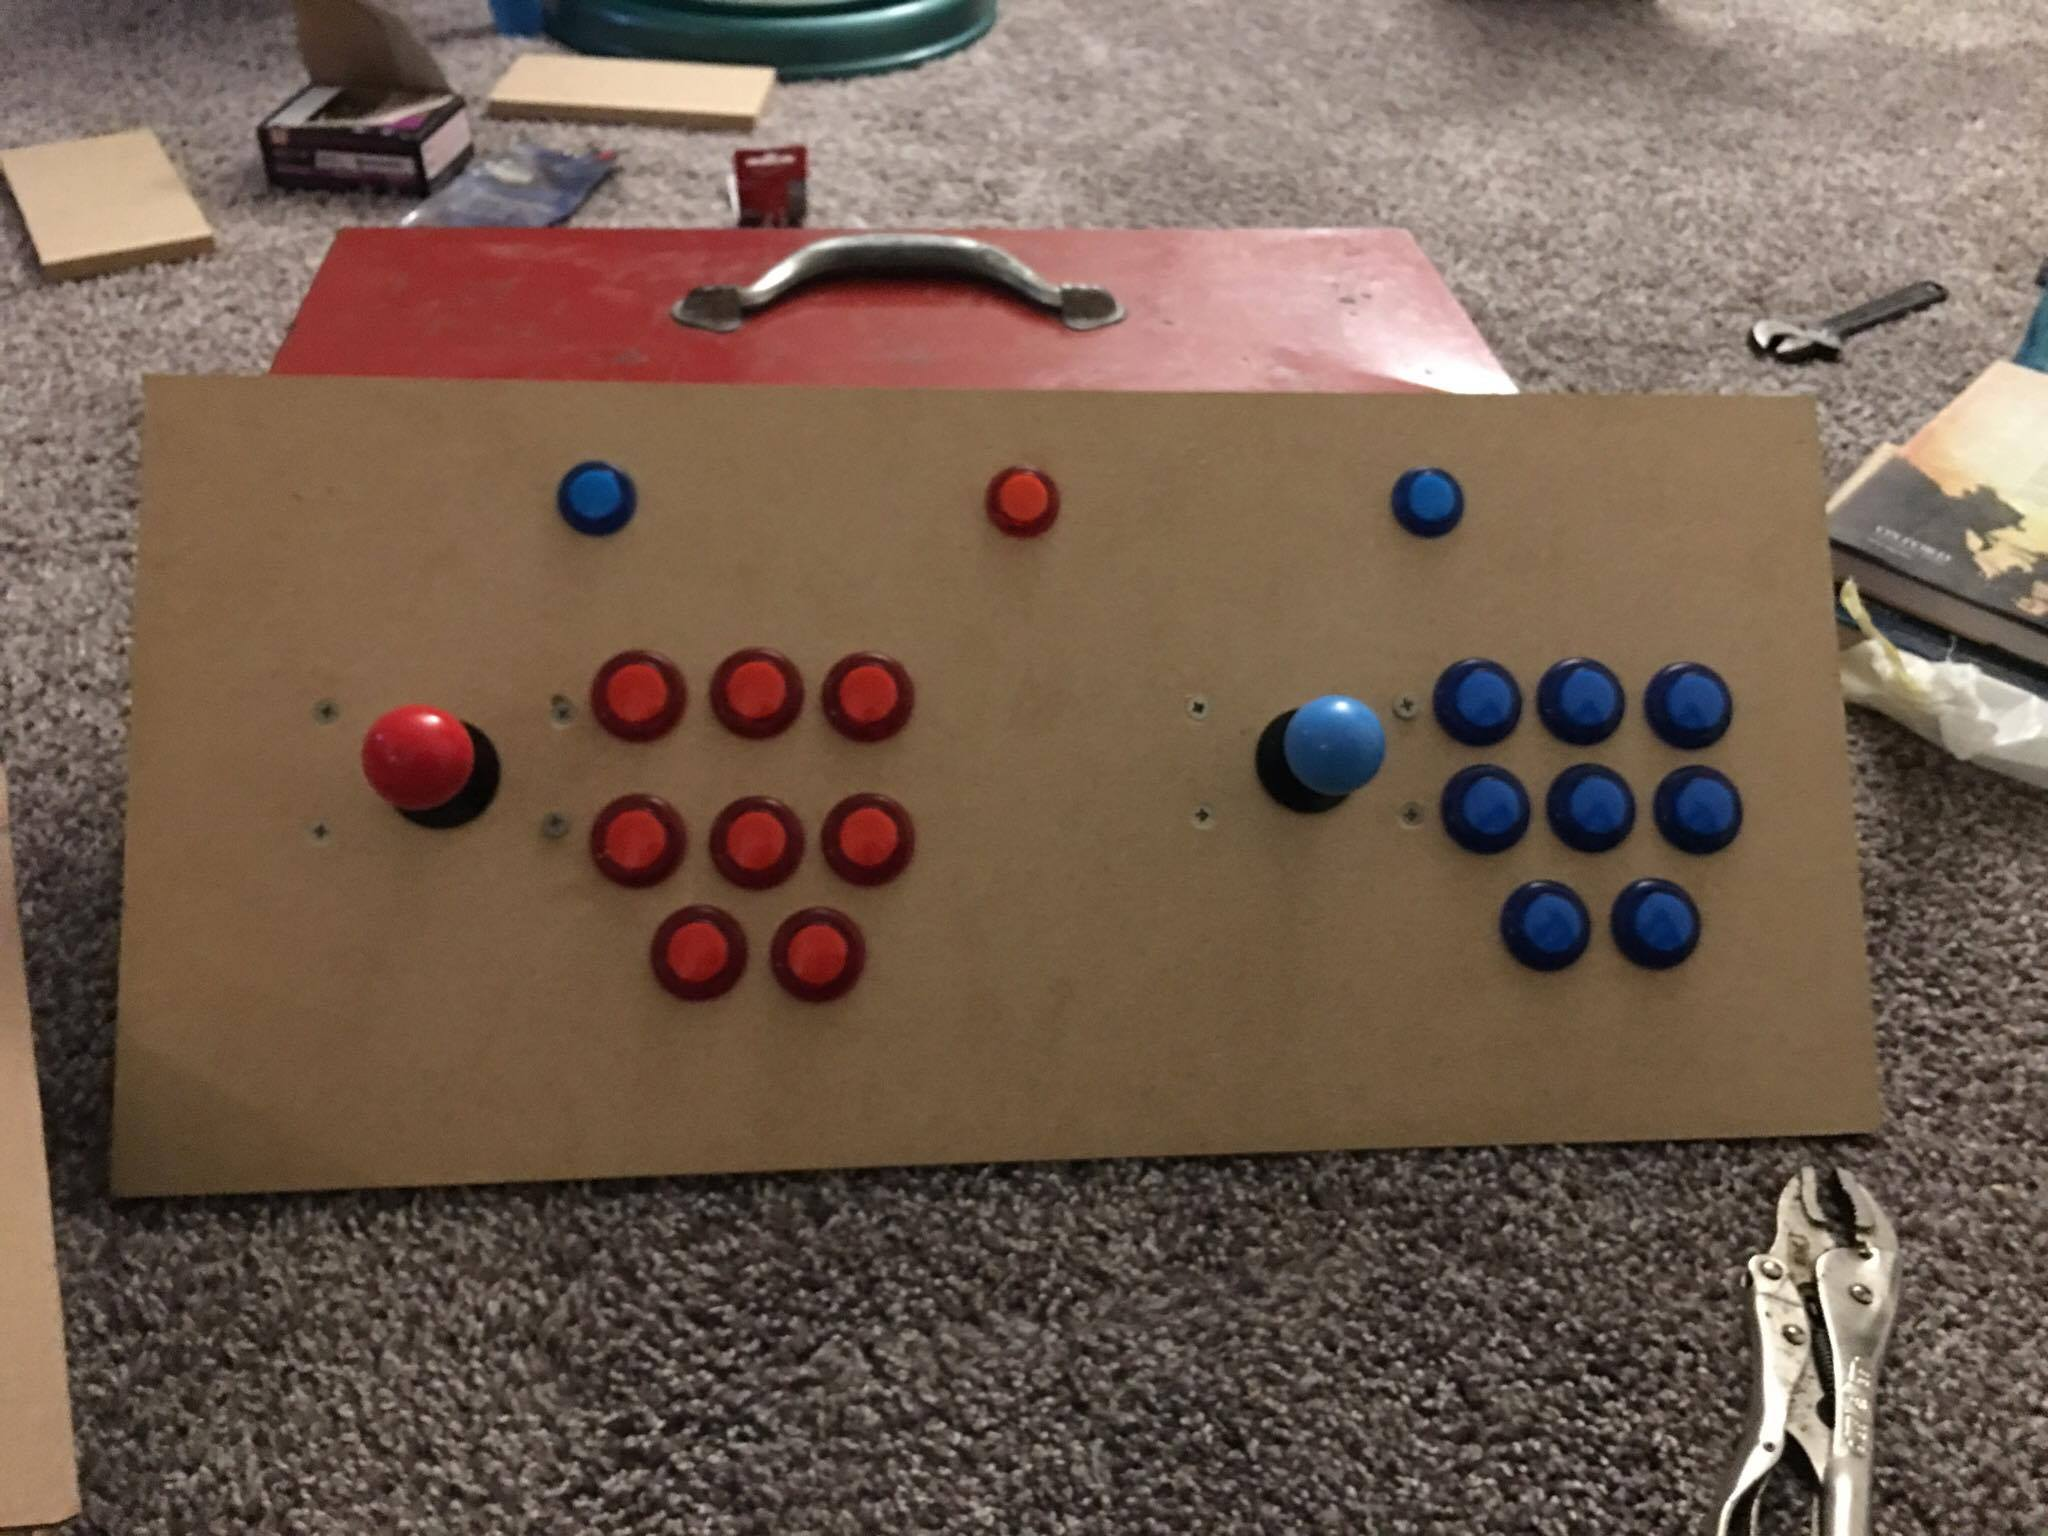 The Front of the arcade panel with buttons and joy stick added. Buttons are two rows of three and one row of two buttons